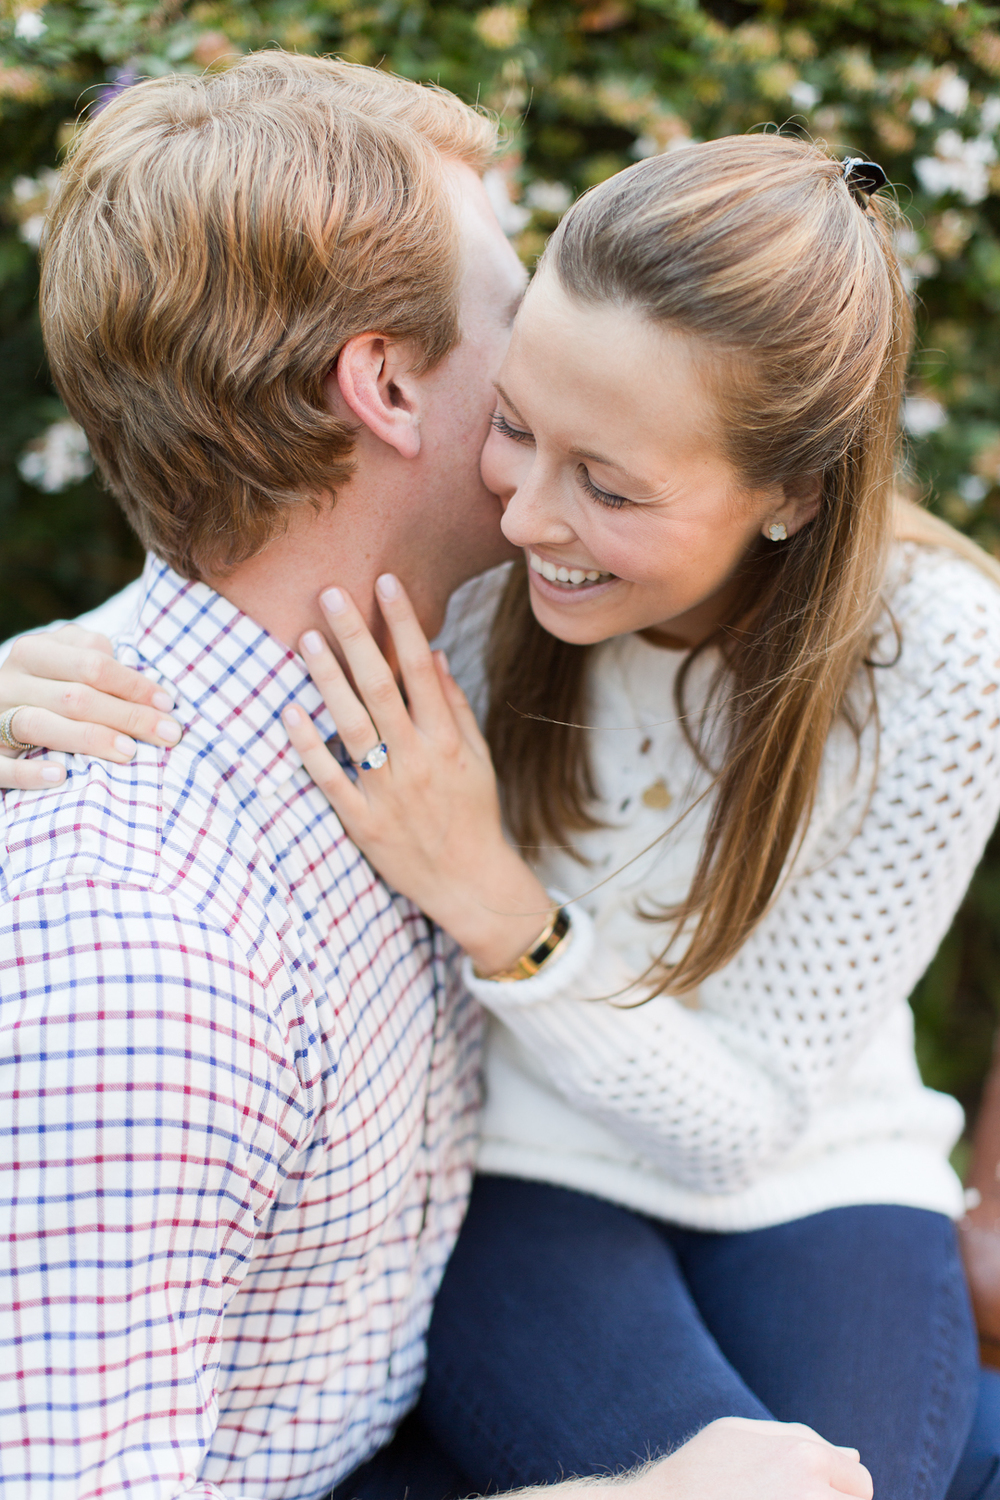 Melissa Kruse Photography - Megan & Tyler West Village Engagement Photos-82.jpg